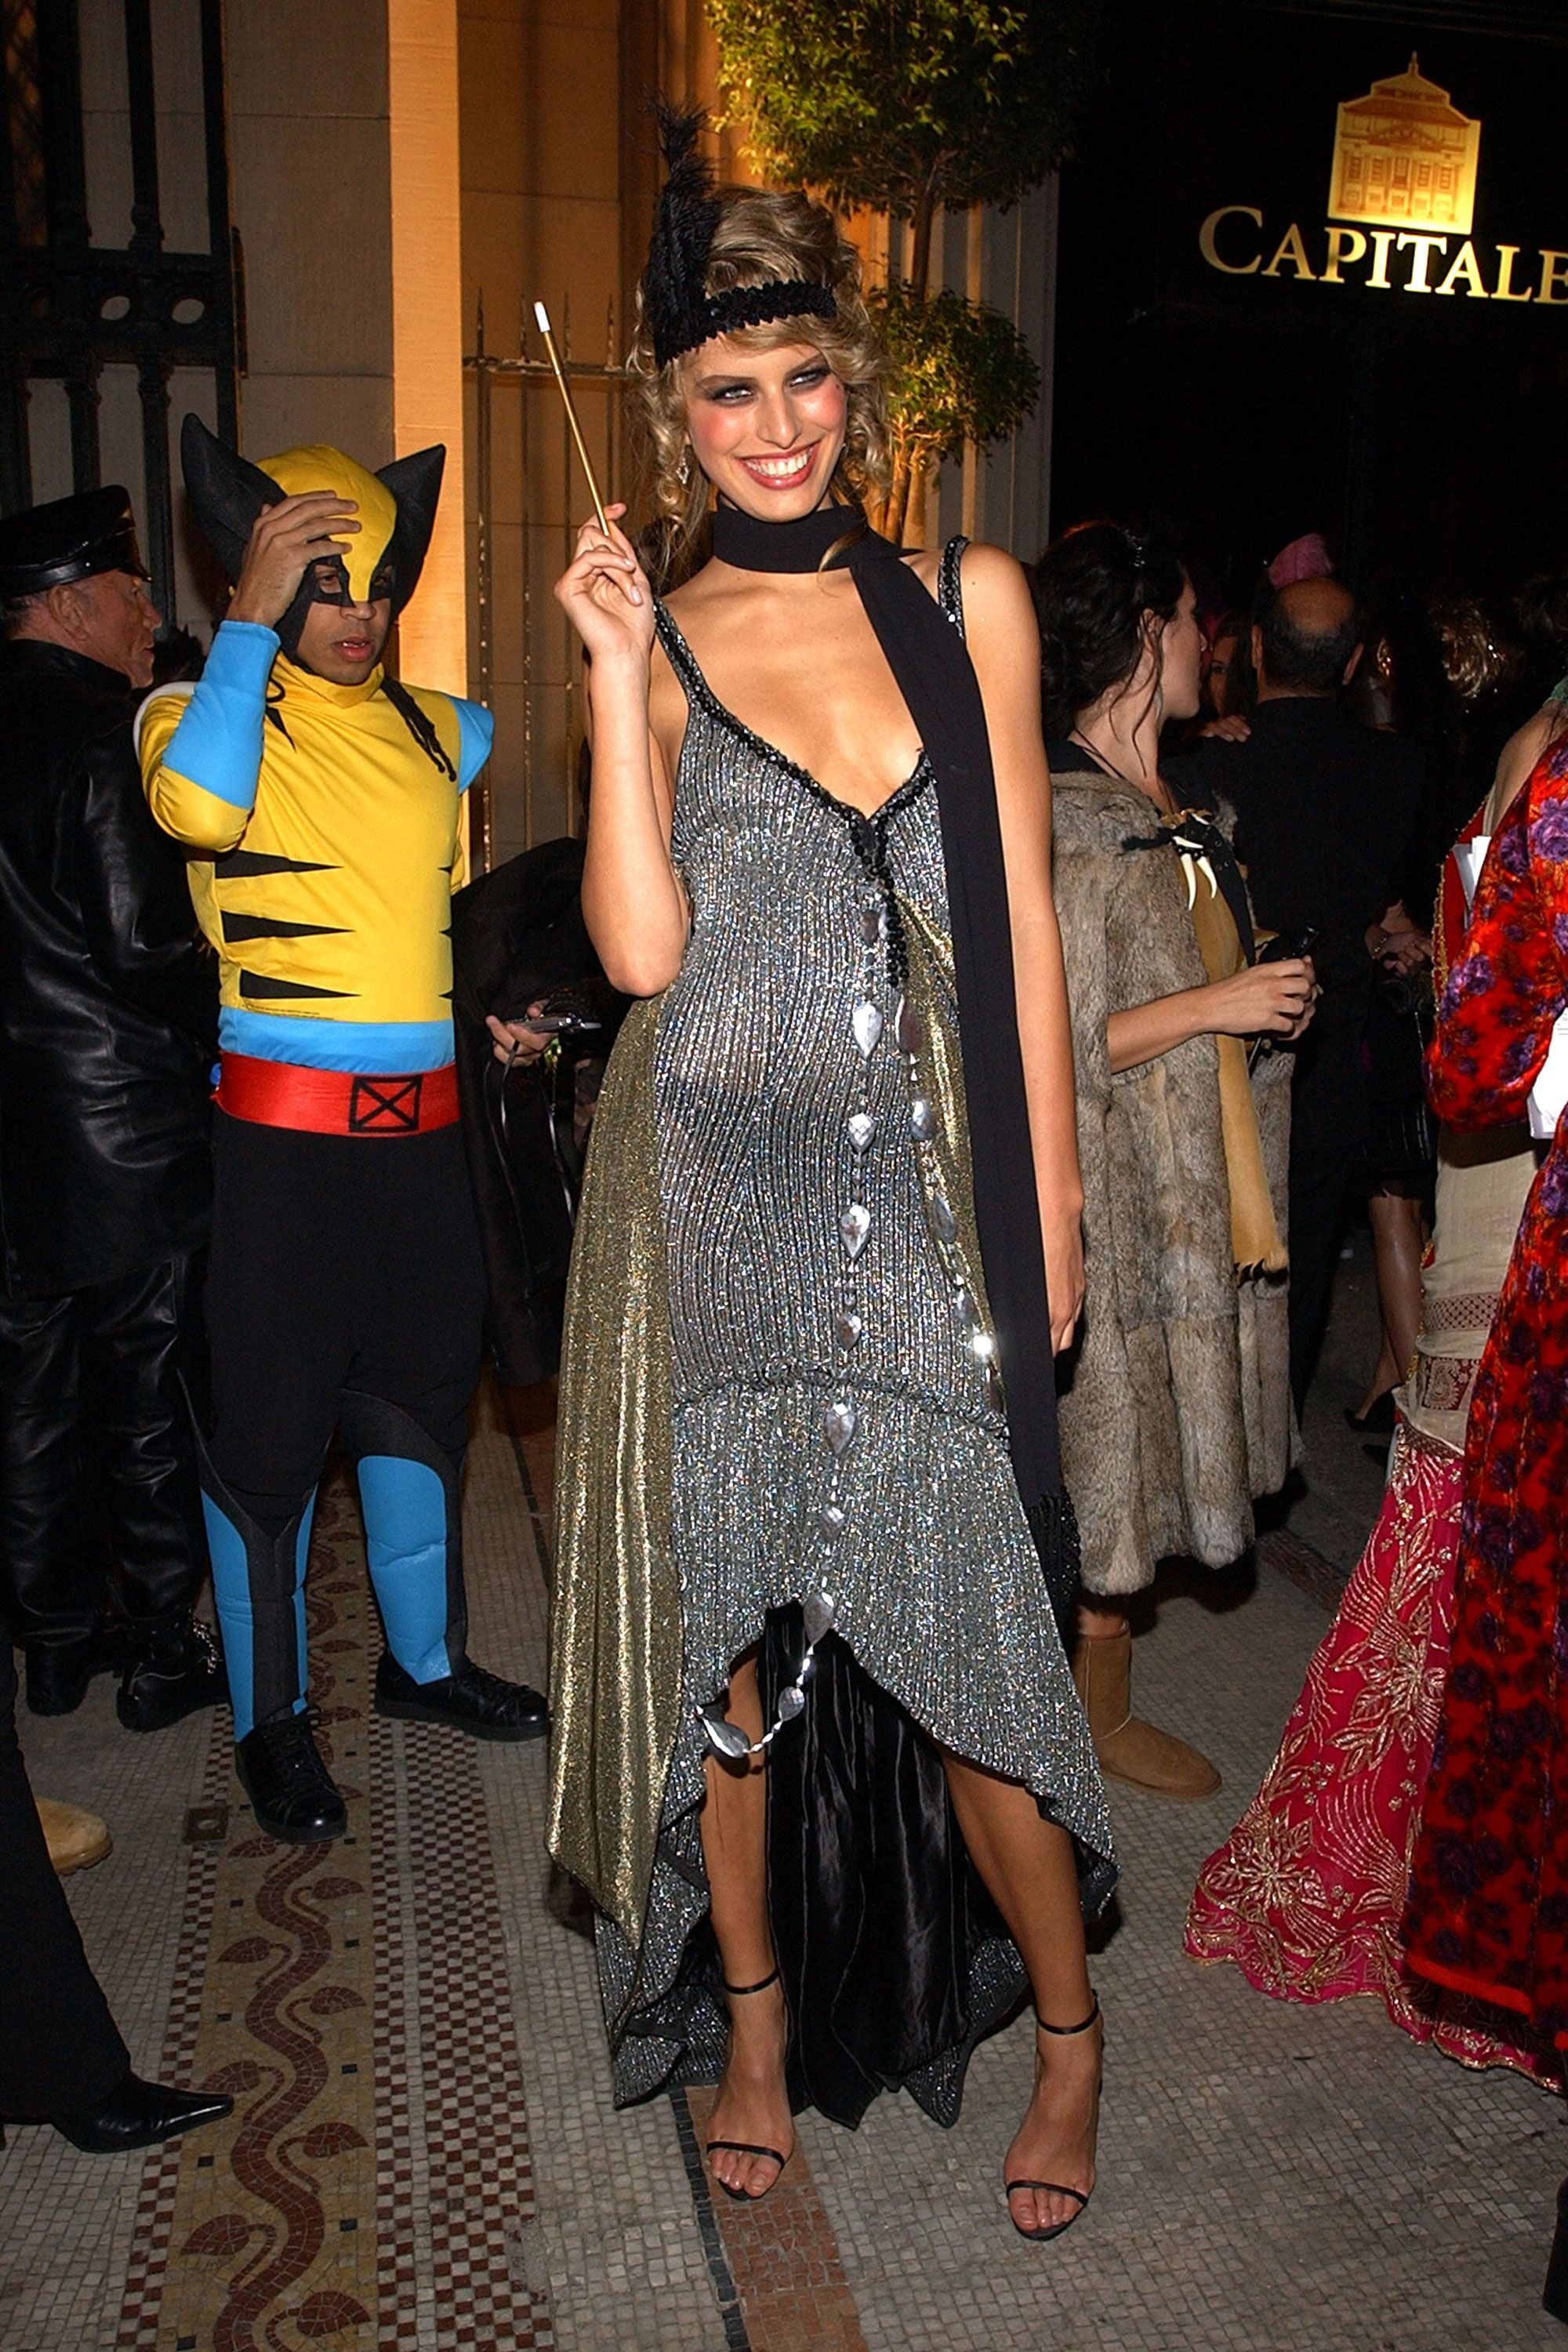 The 100 Most Epic Celebrity Halloween Costume Ideas Best Celebrity Halloween Costumes Celebrity Costumes Celebrity Halloween Costumes